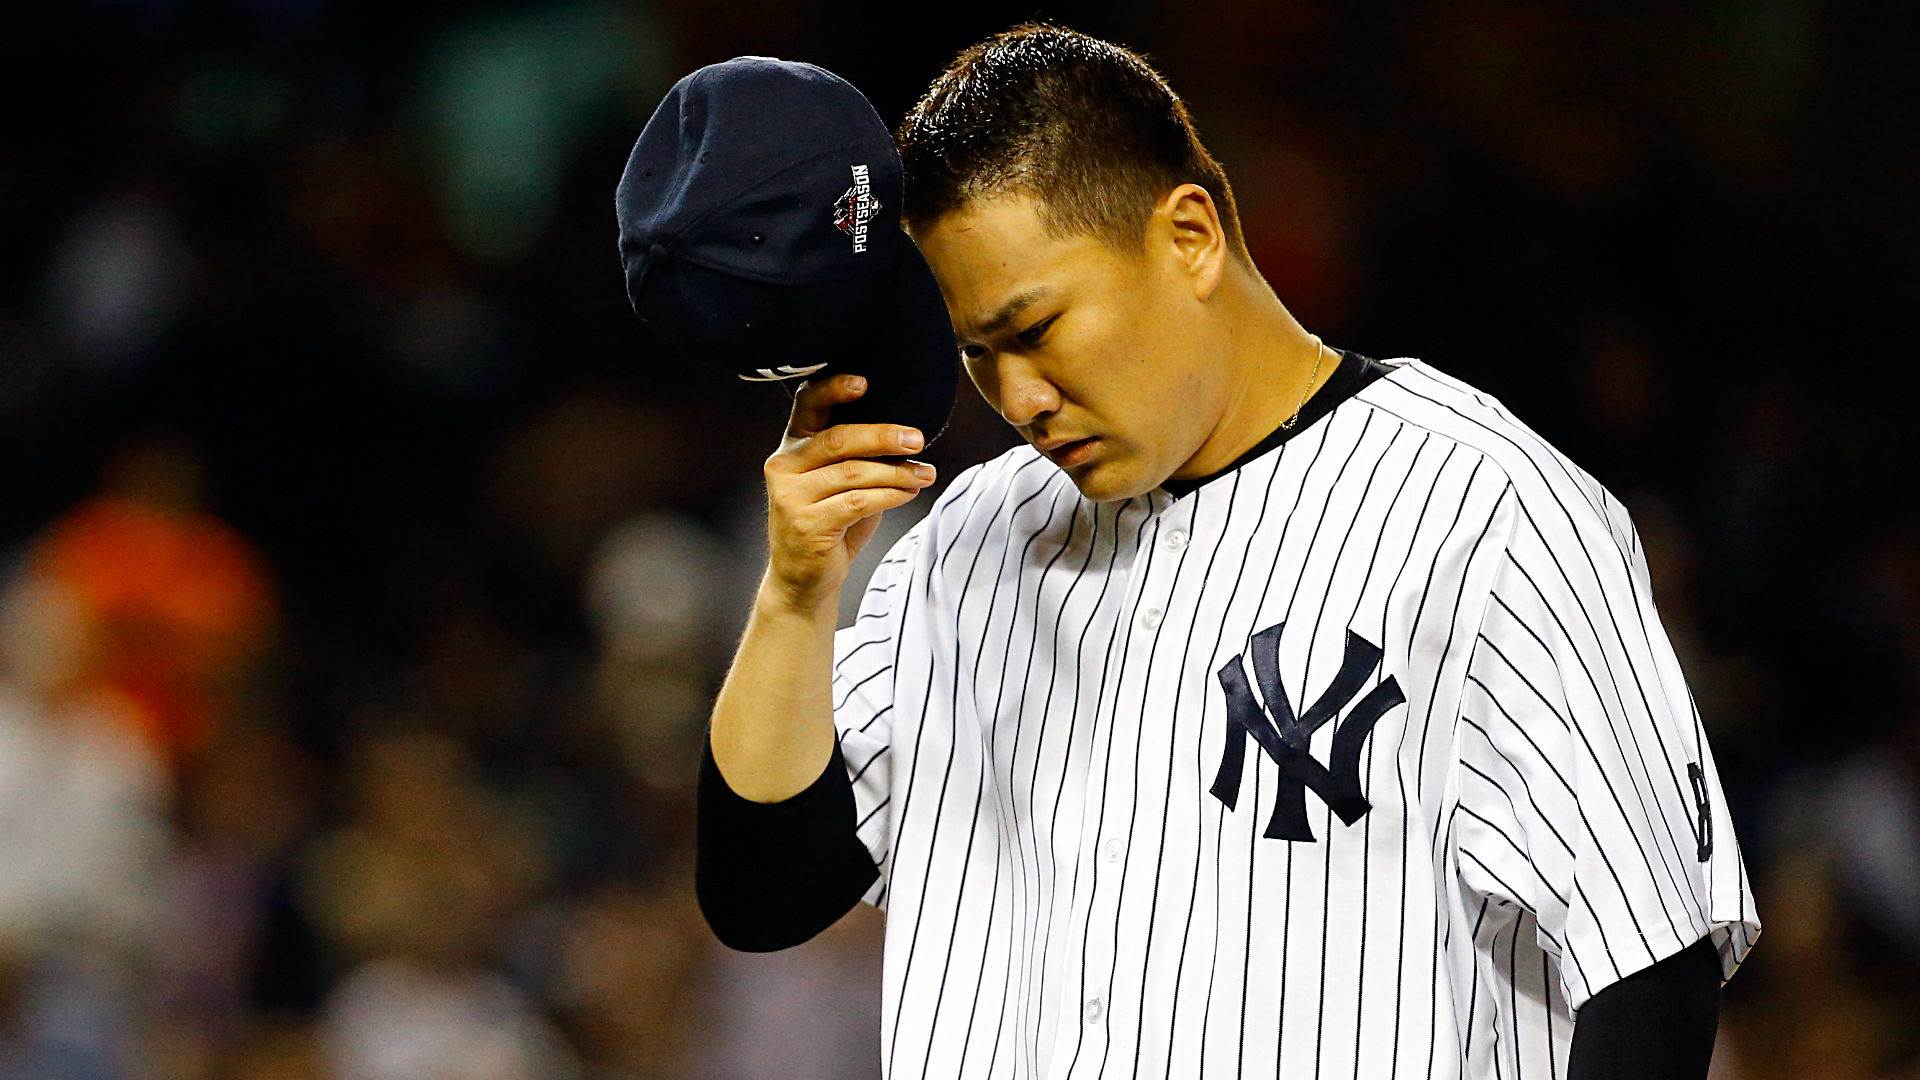 Yankees Place Masahiro Tanaka on 10-Day Disabled List